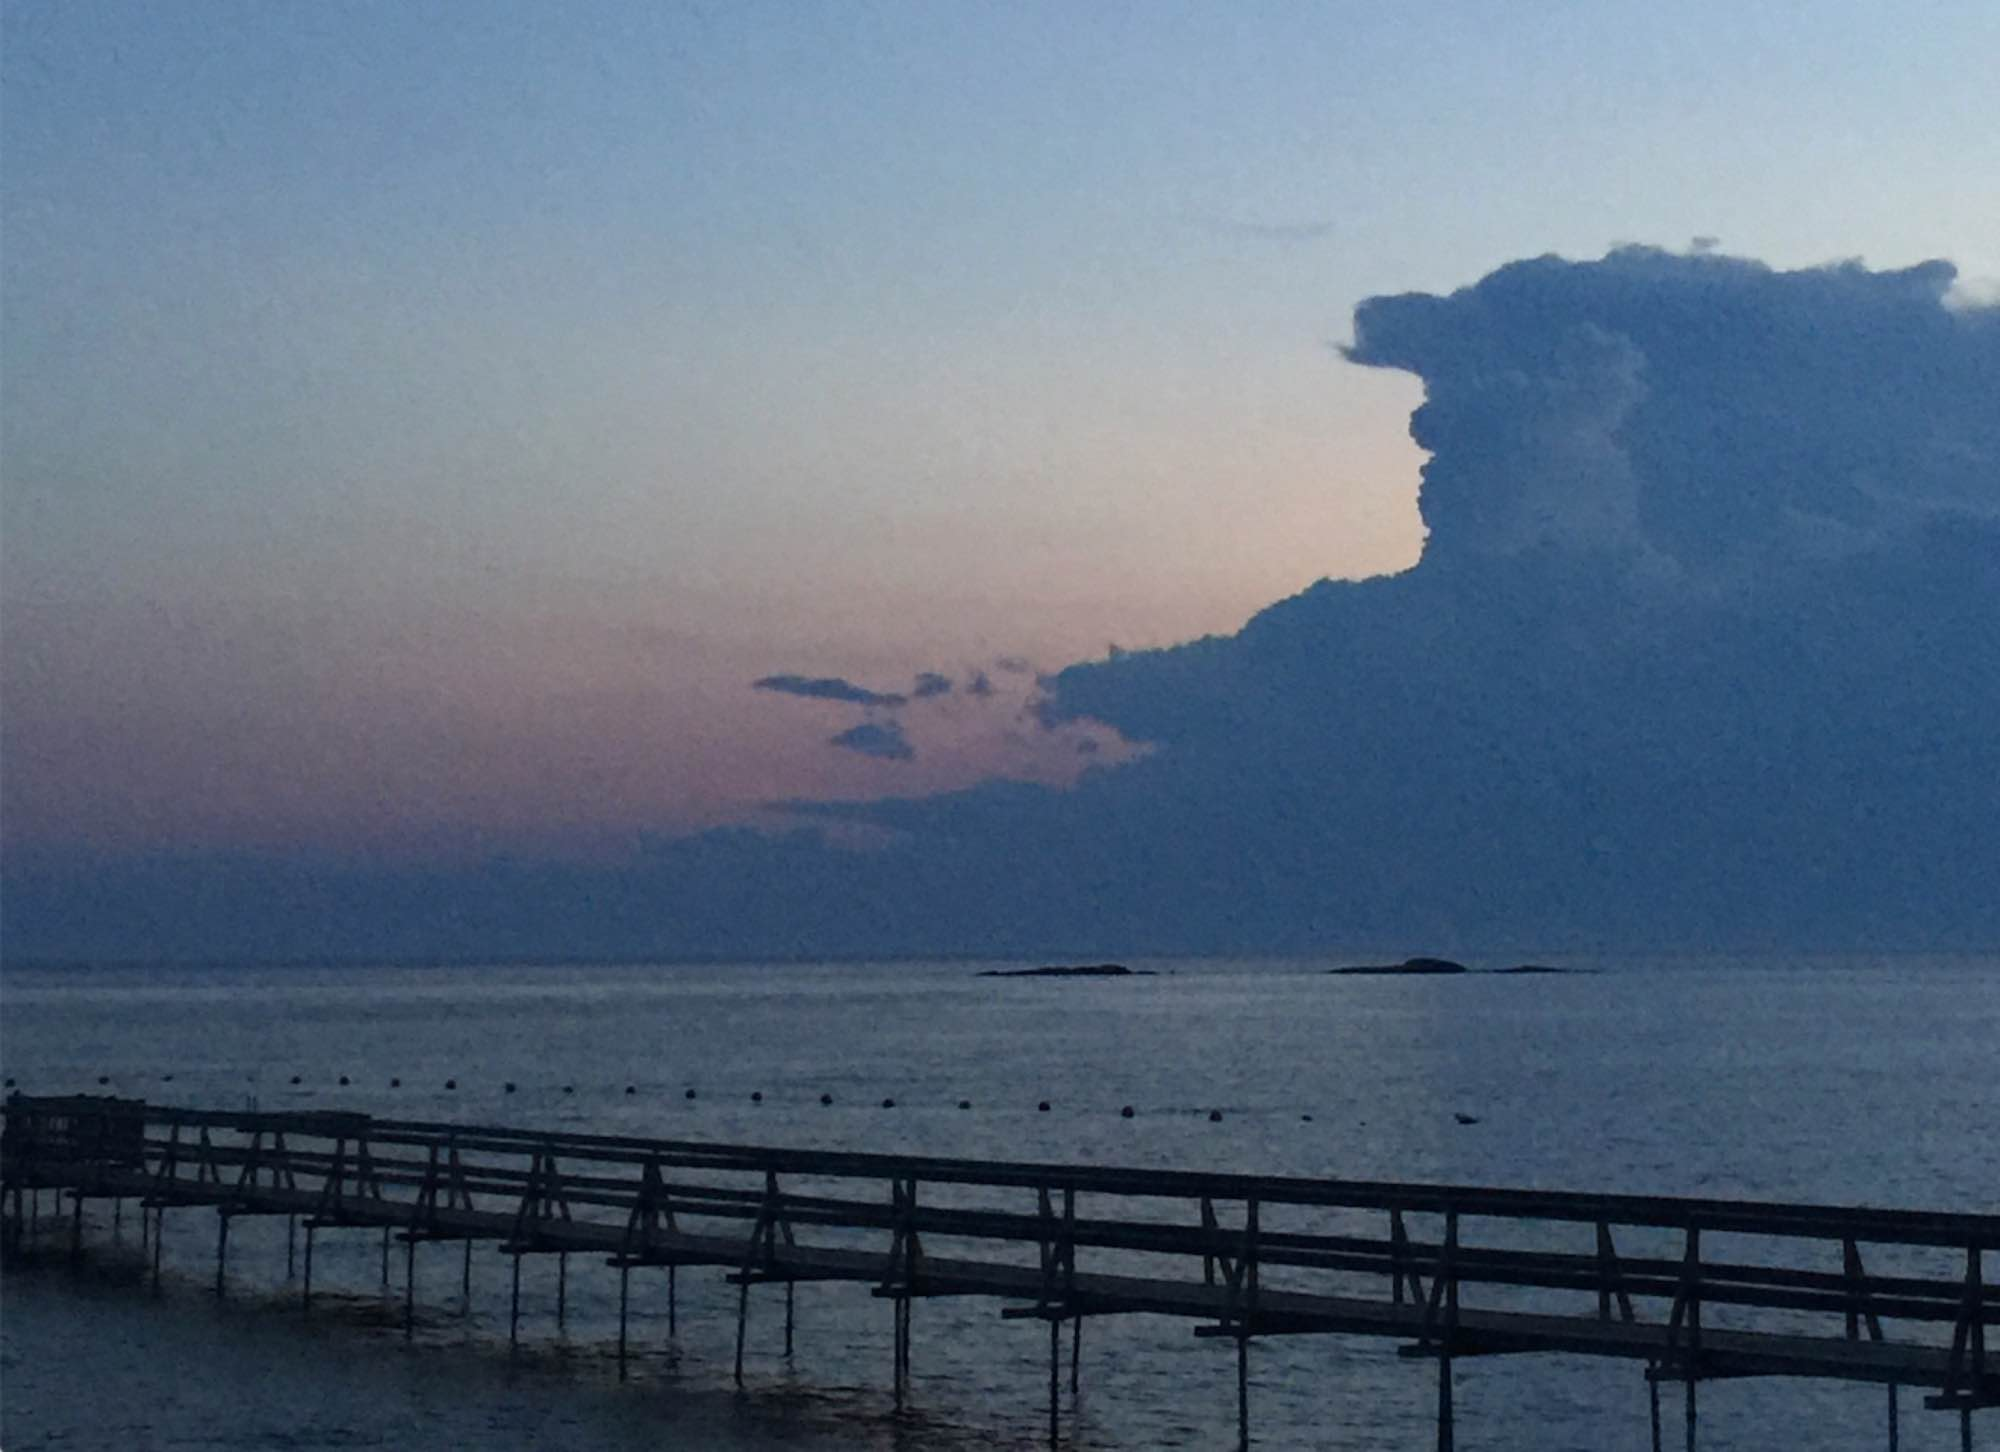 Clouds hovering over Long Island Sound. Photo by Christine Chang Hanway